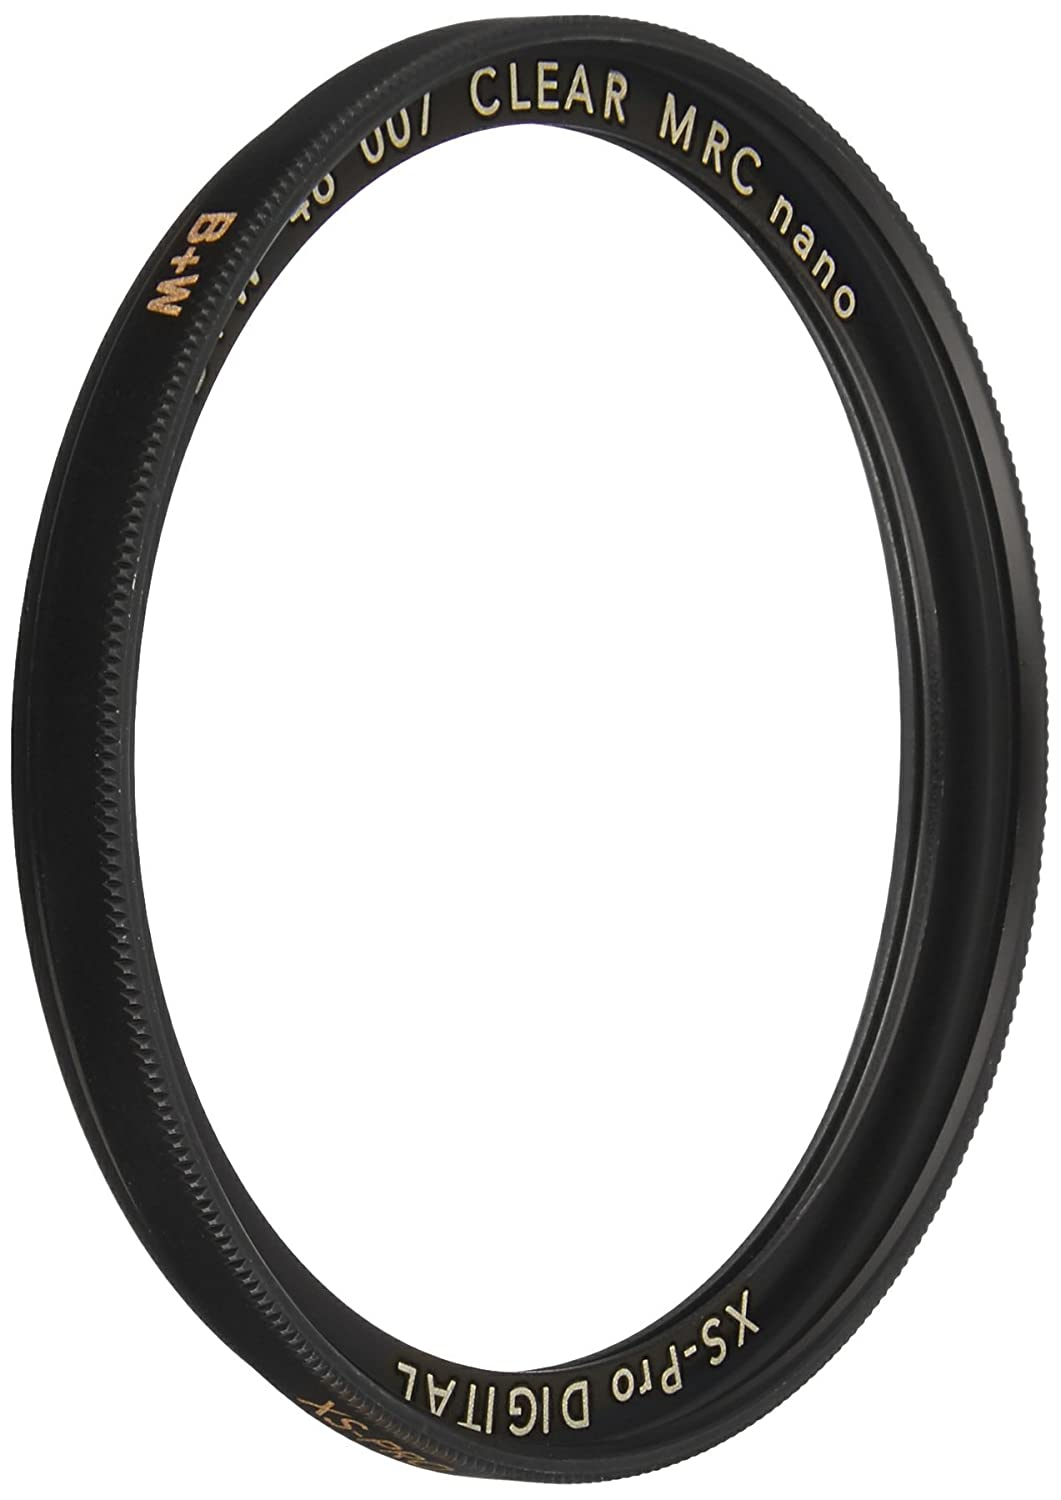 B+W 46MM XS-PRO Clear with Multi-Resistant Nano Coating (007M) for Camera Lens Schneider 66-1073872